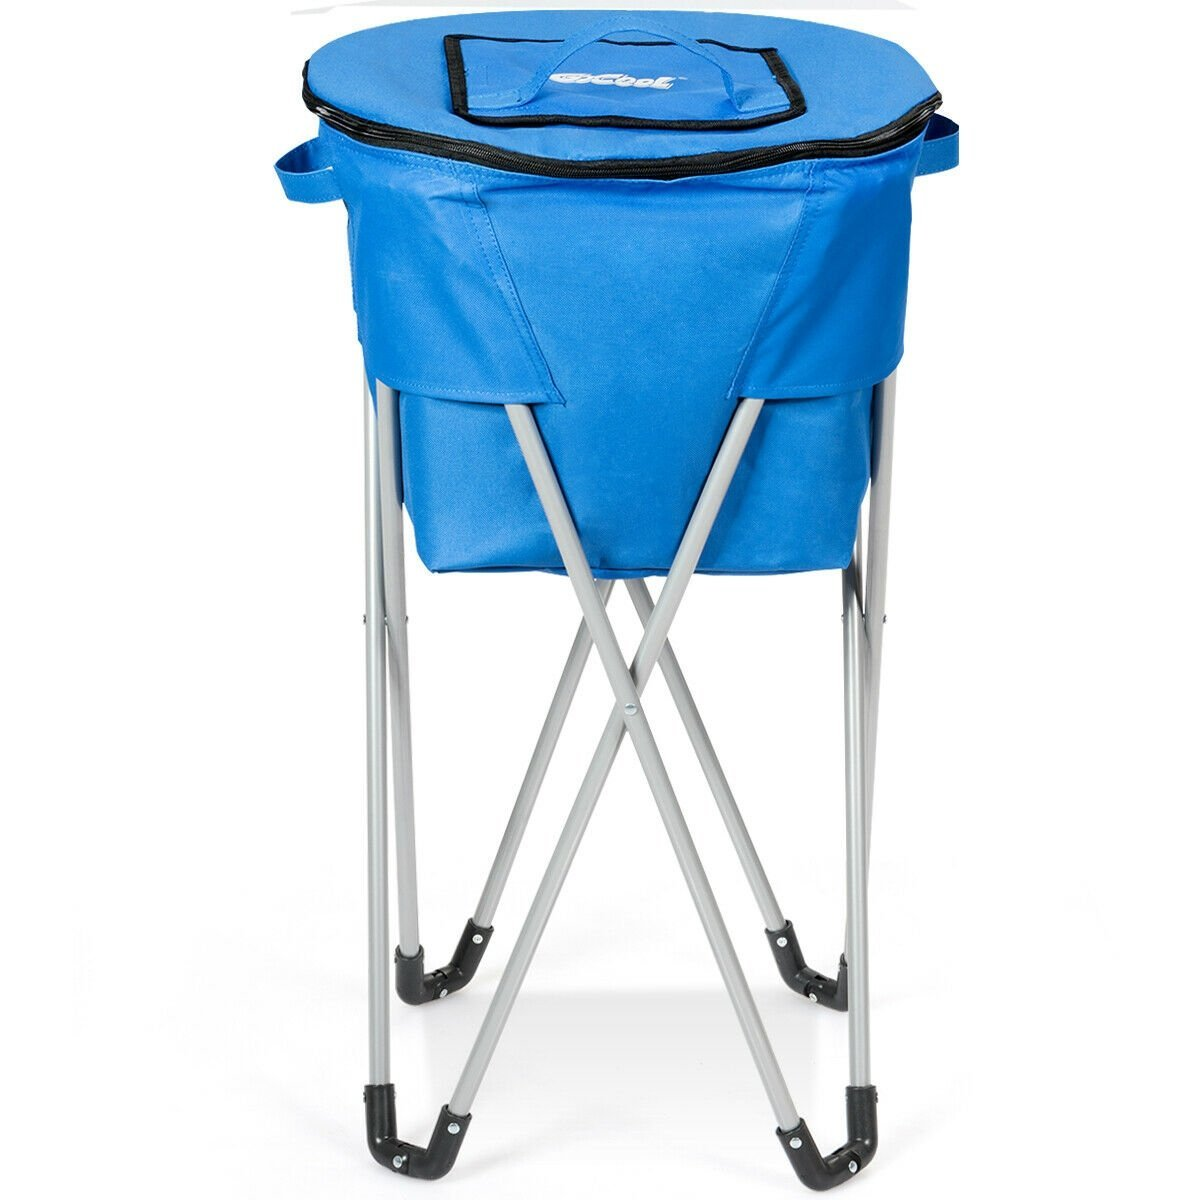 Portable Insulated Tub Party Picnic Cooler With Folding